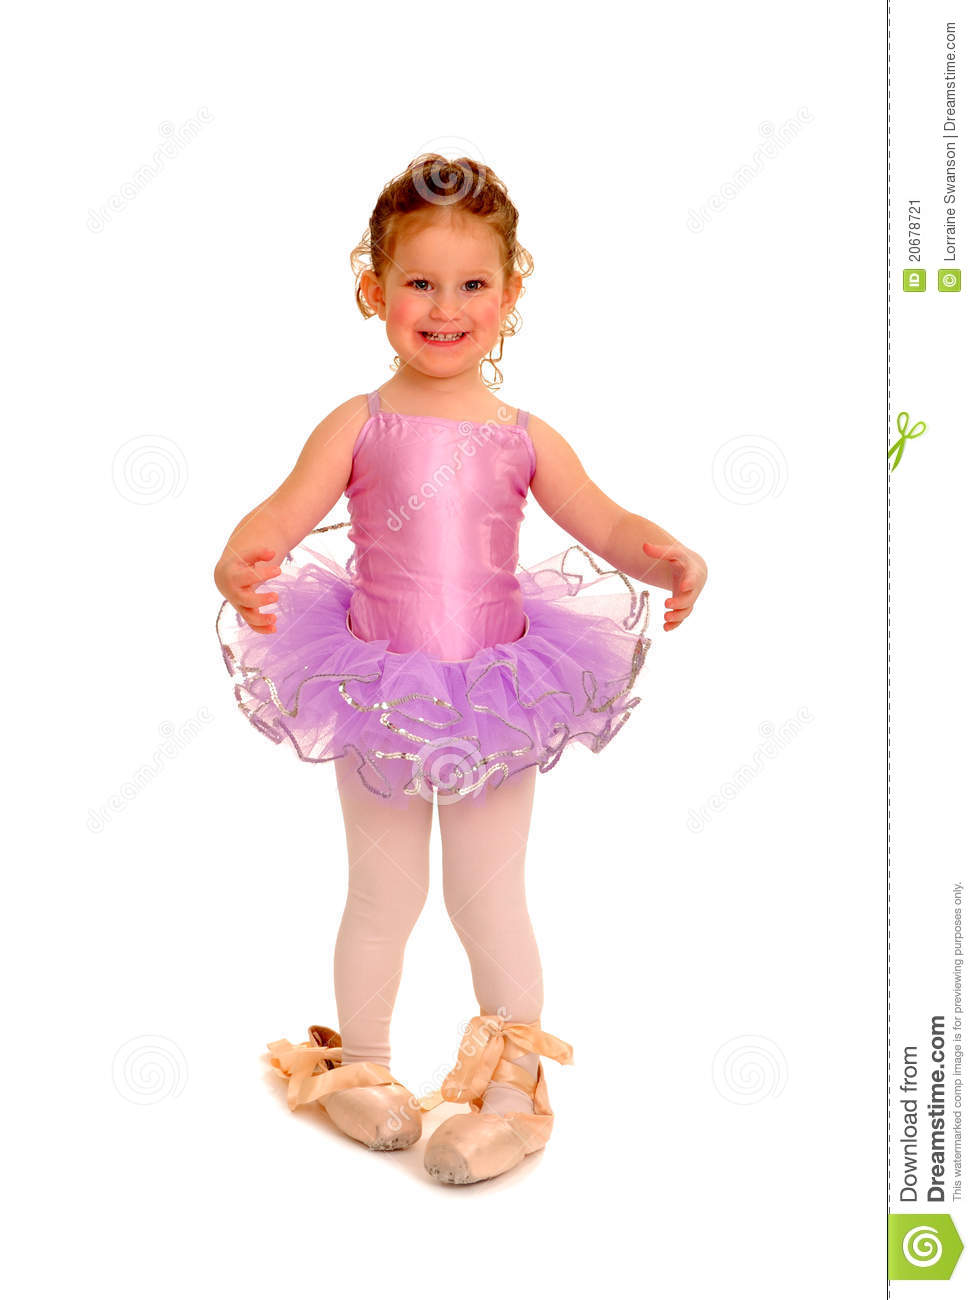 romania map with Stock Image Little Girl Ballerina Pointe Shoes Image20678721 on 237713 also Bucharest Budapest Tour additionally Arsareth likewise Viewlarge additionally Bratislava.